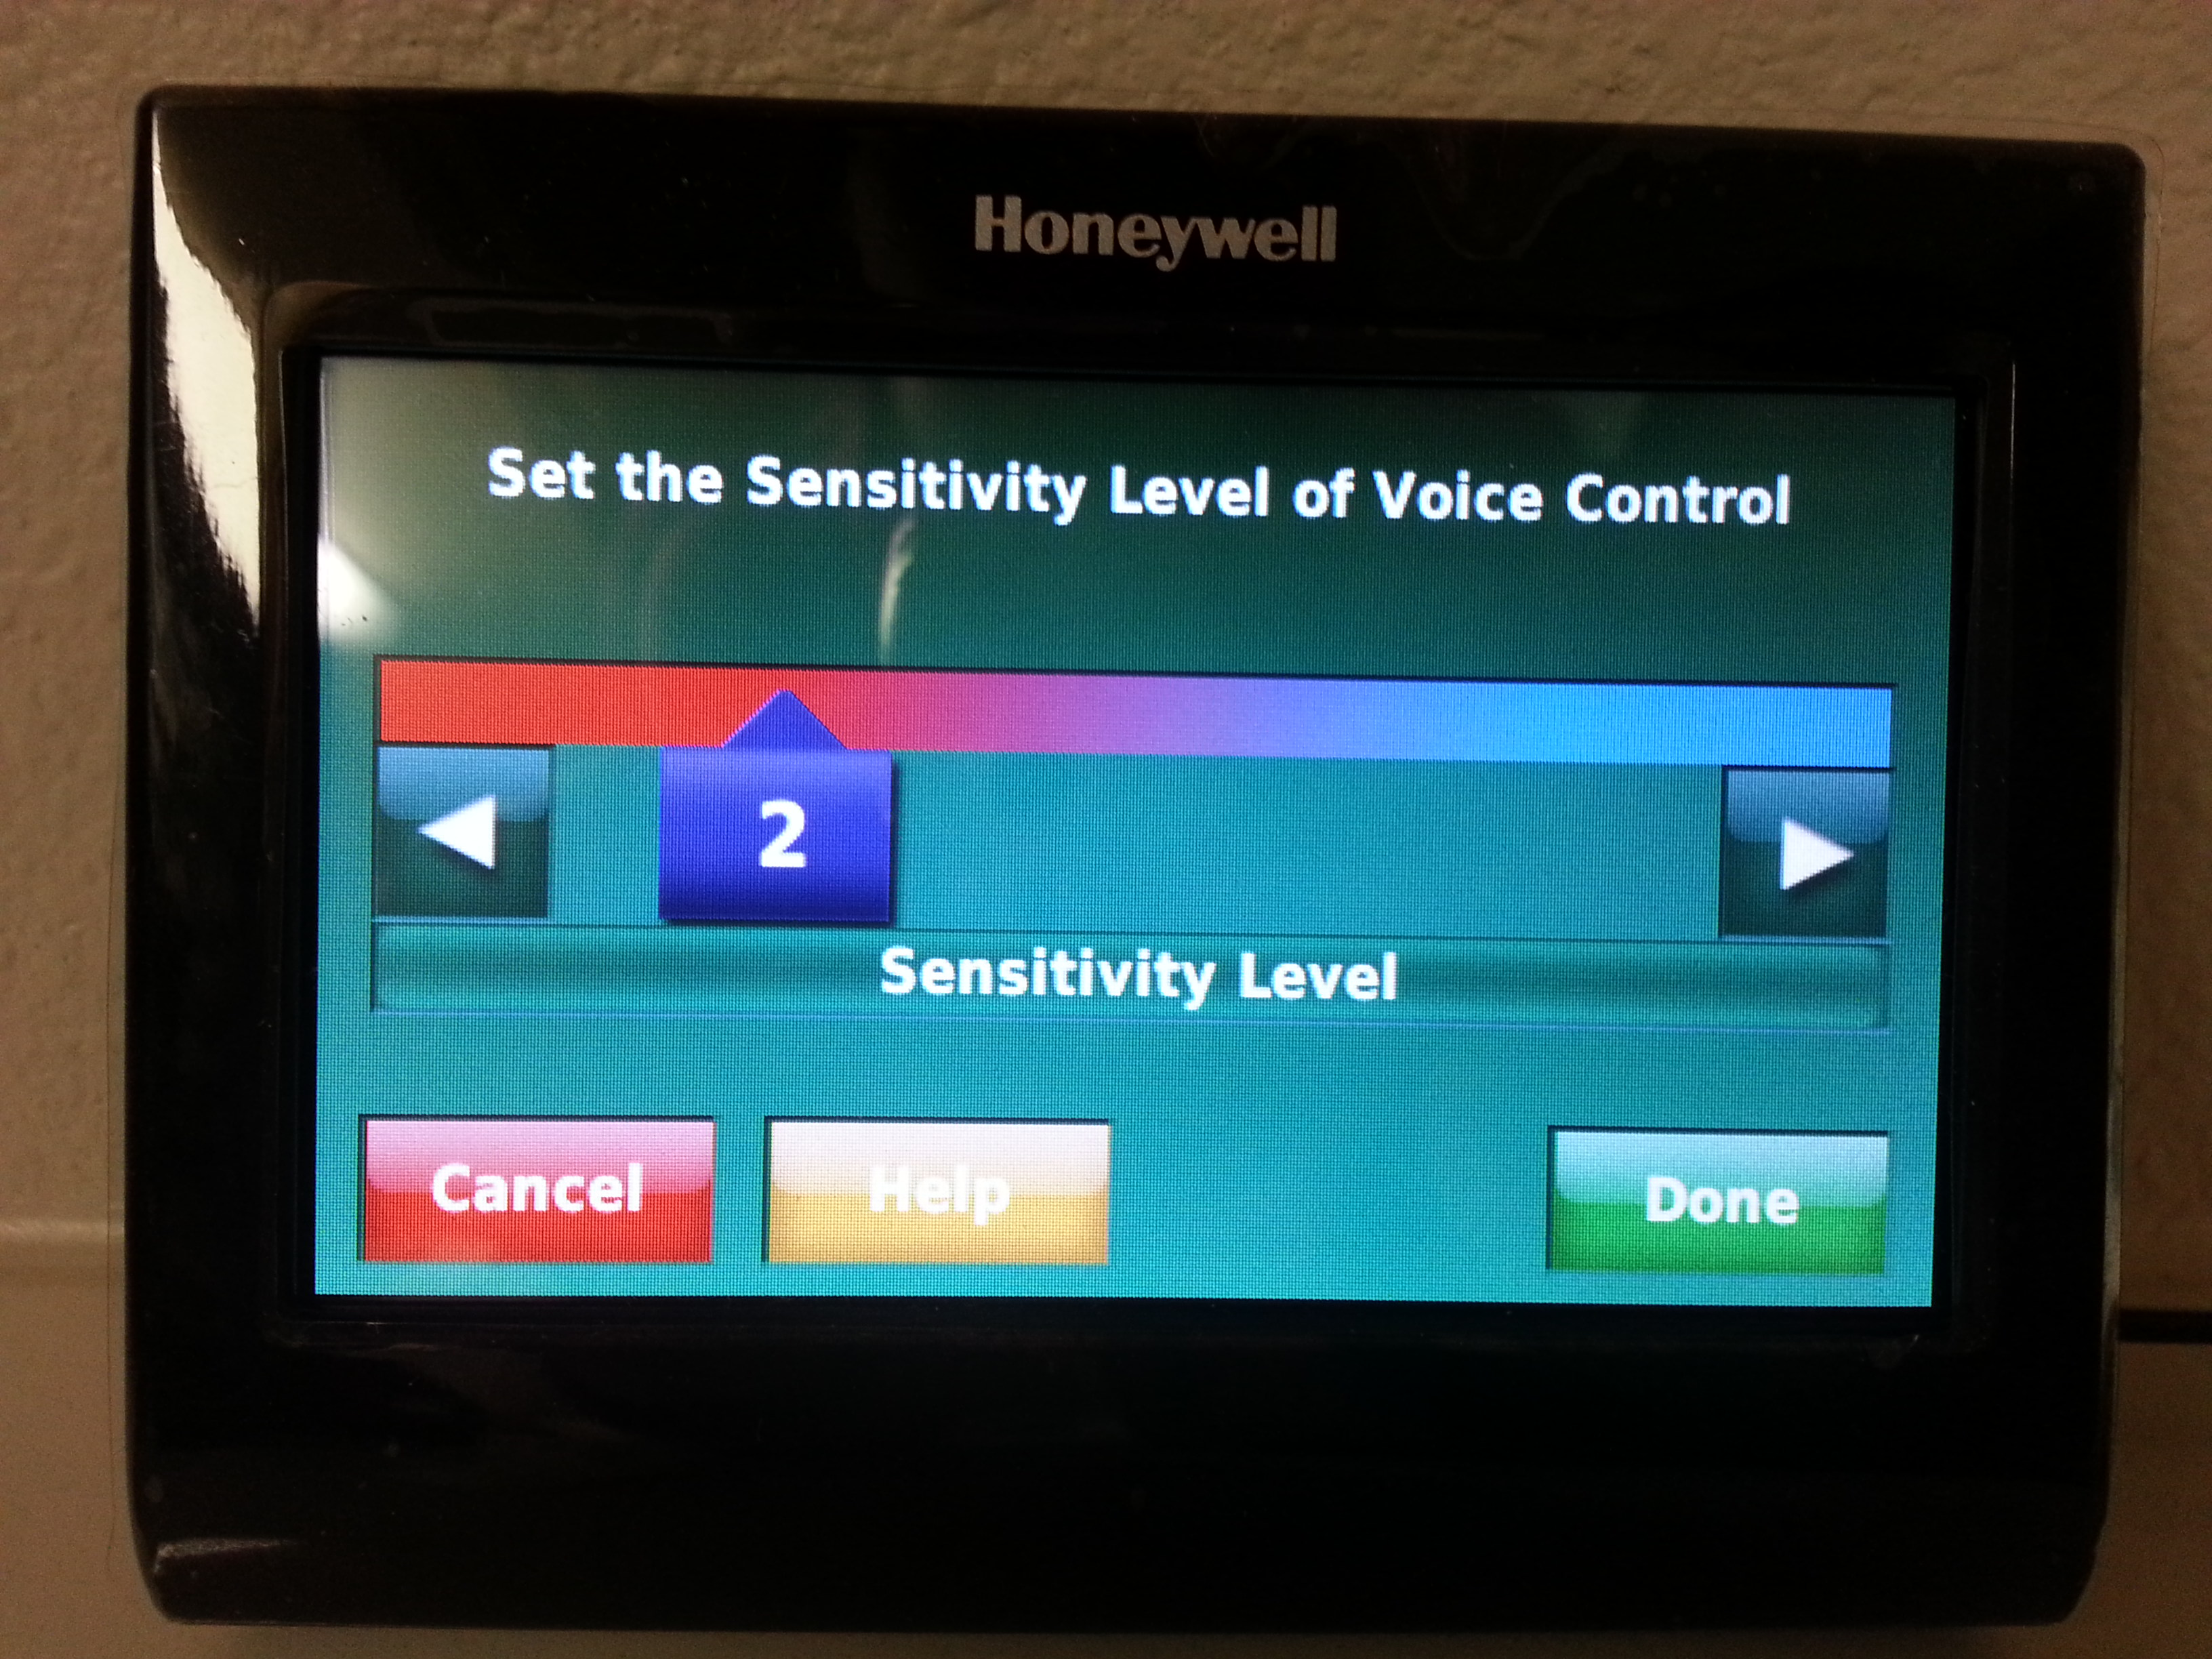 You can set how sensitive the voice recognition portion should be. You can also select the color of the screen to match your decor.